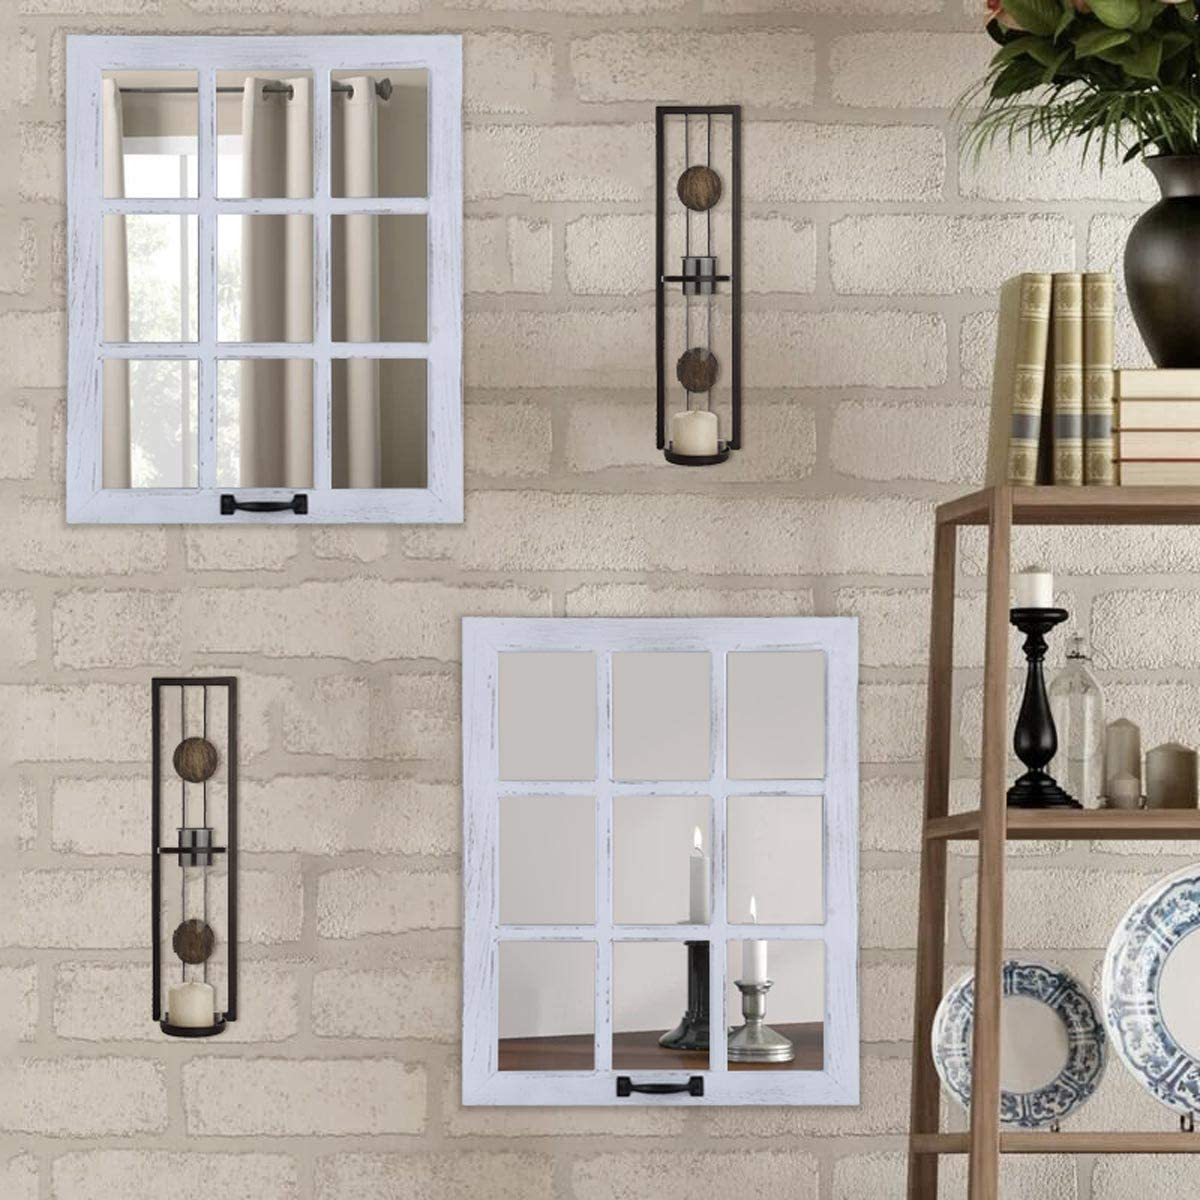 LOSOUR Decorative Mirror-Distressed Wood Windowpane Mirror- Rustic Home Decoration Window Frame Wall Mirror with Hanging Hardware for Farmhouse Bedroom Living Room Bathroom Kitchen (2, 18Wx23L)